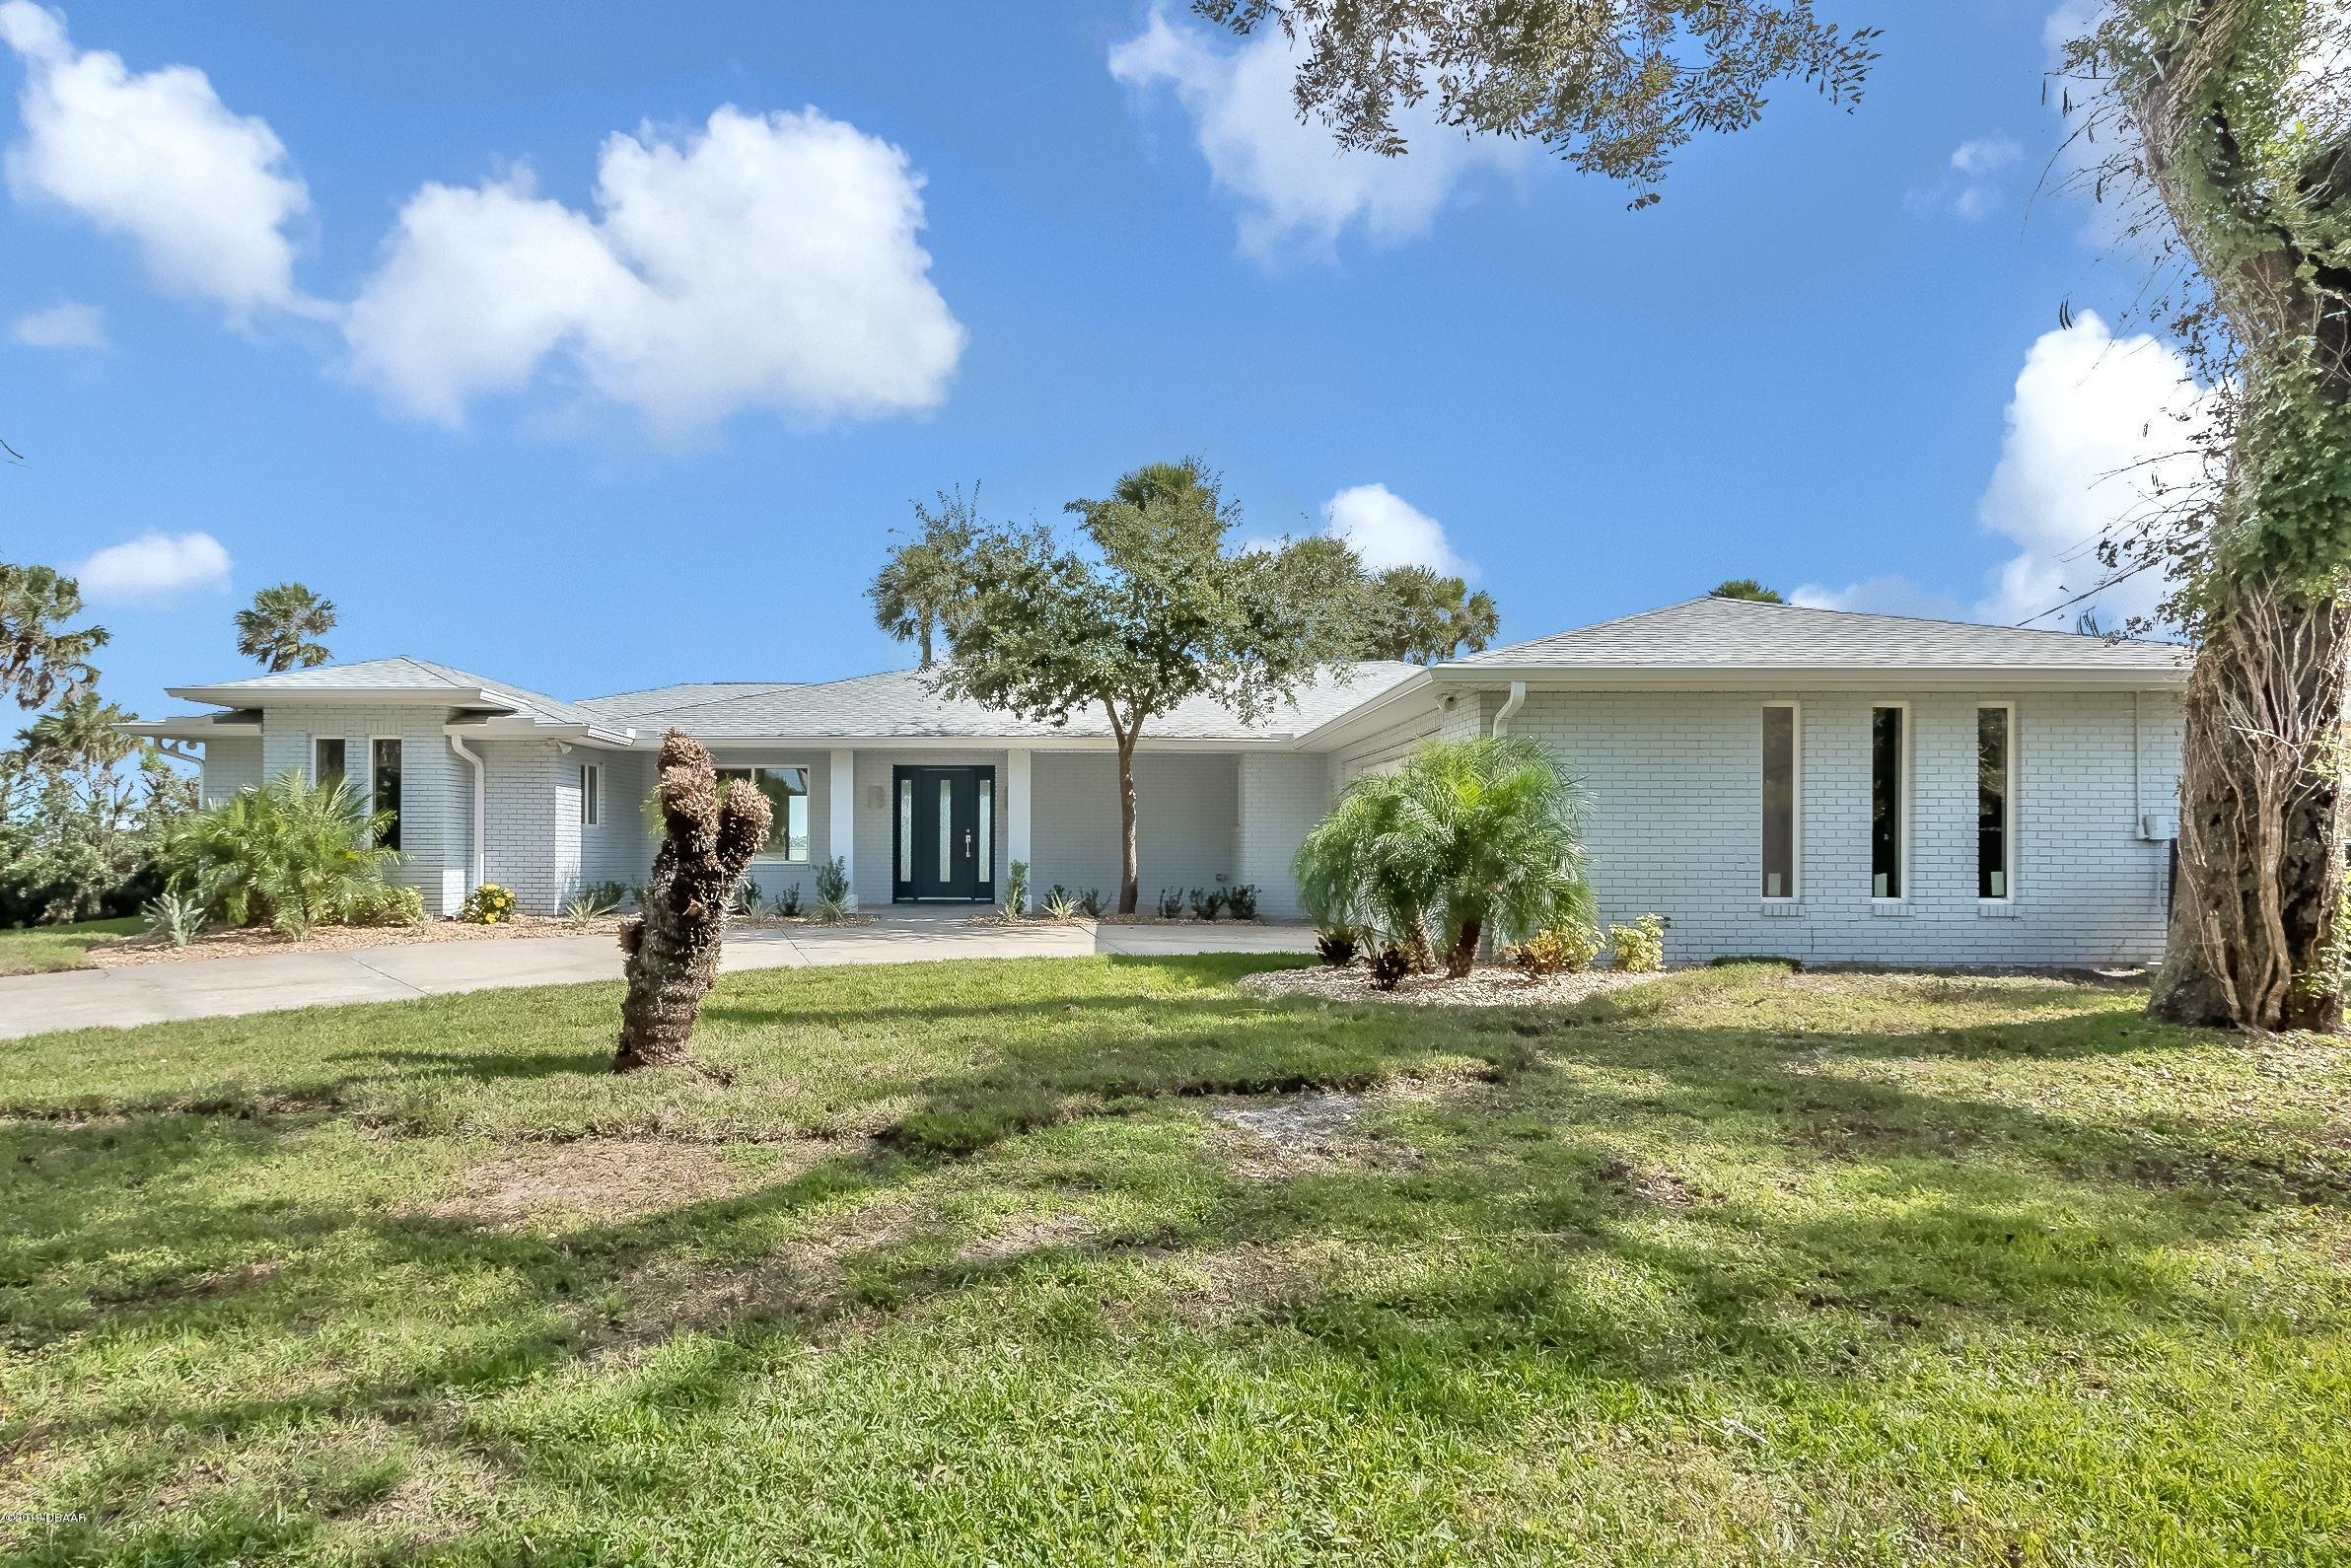 101 Big Tree Rd 32119 - One of South Daytona Homes for Sale